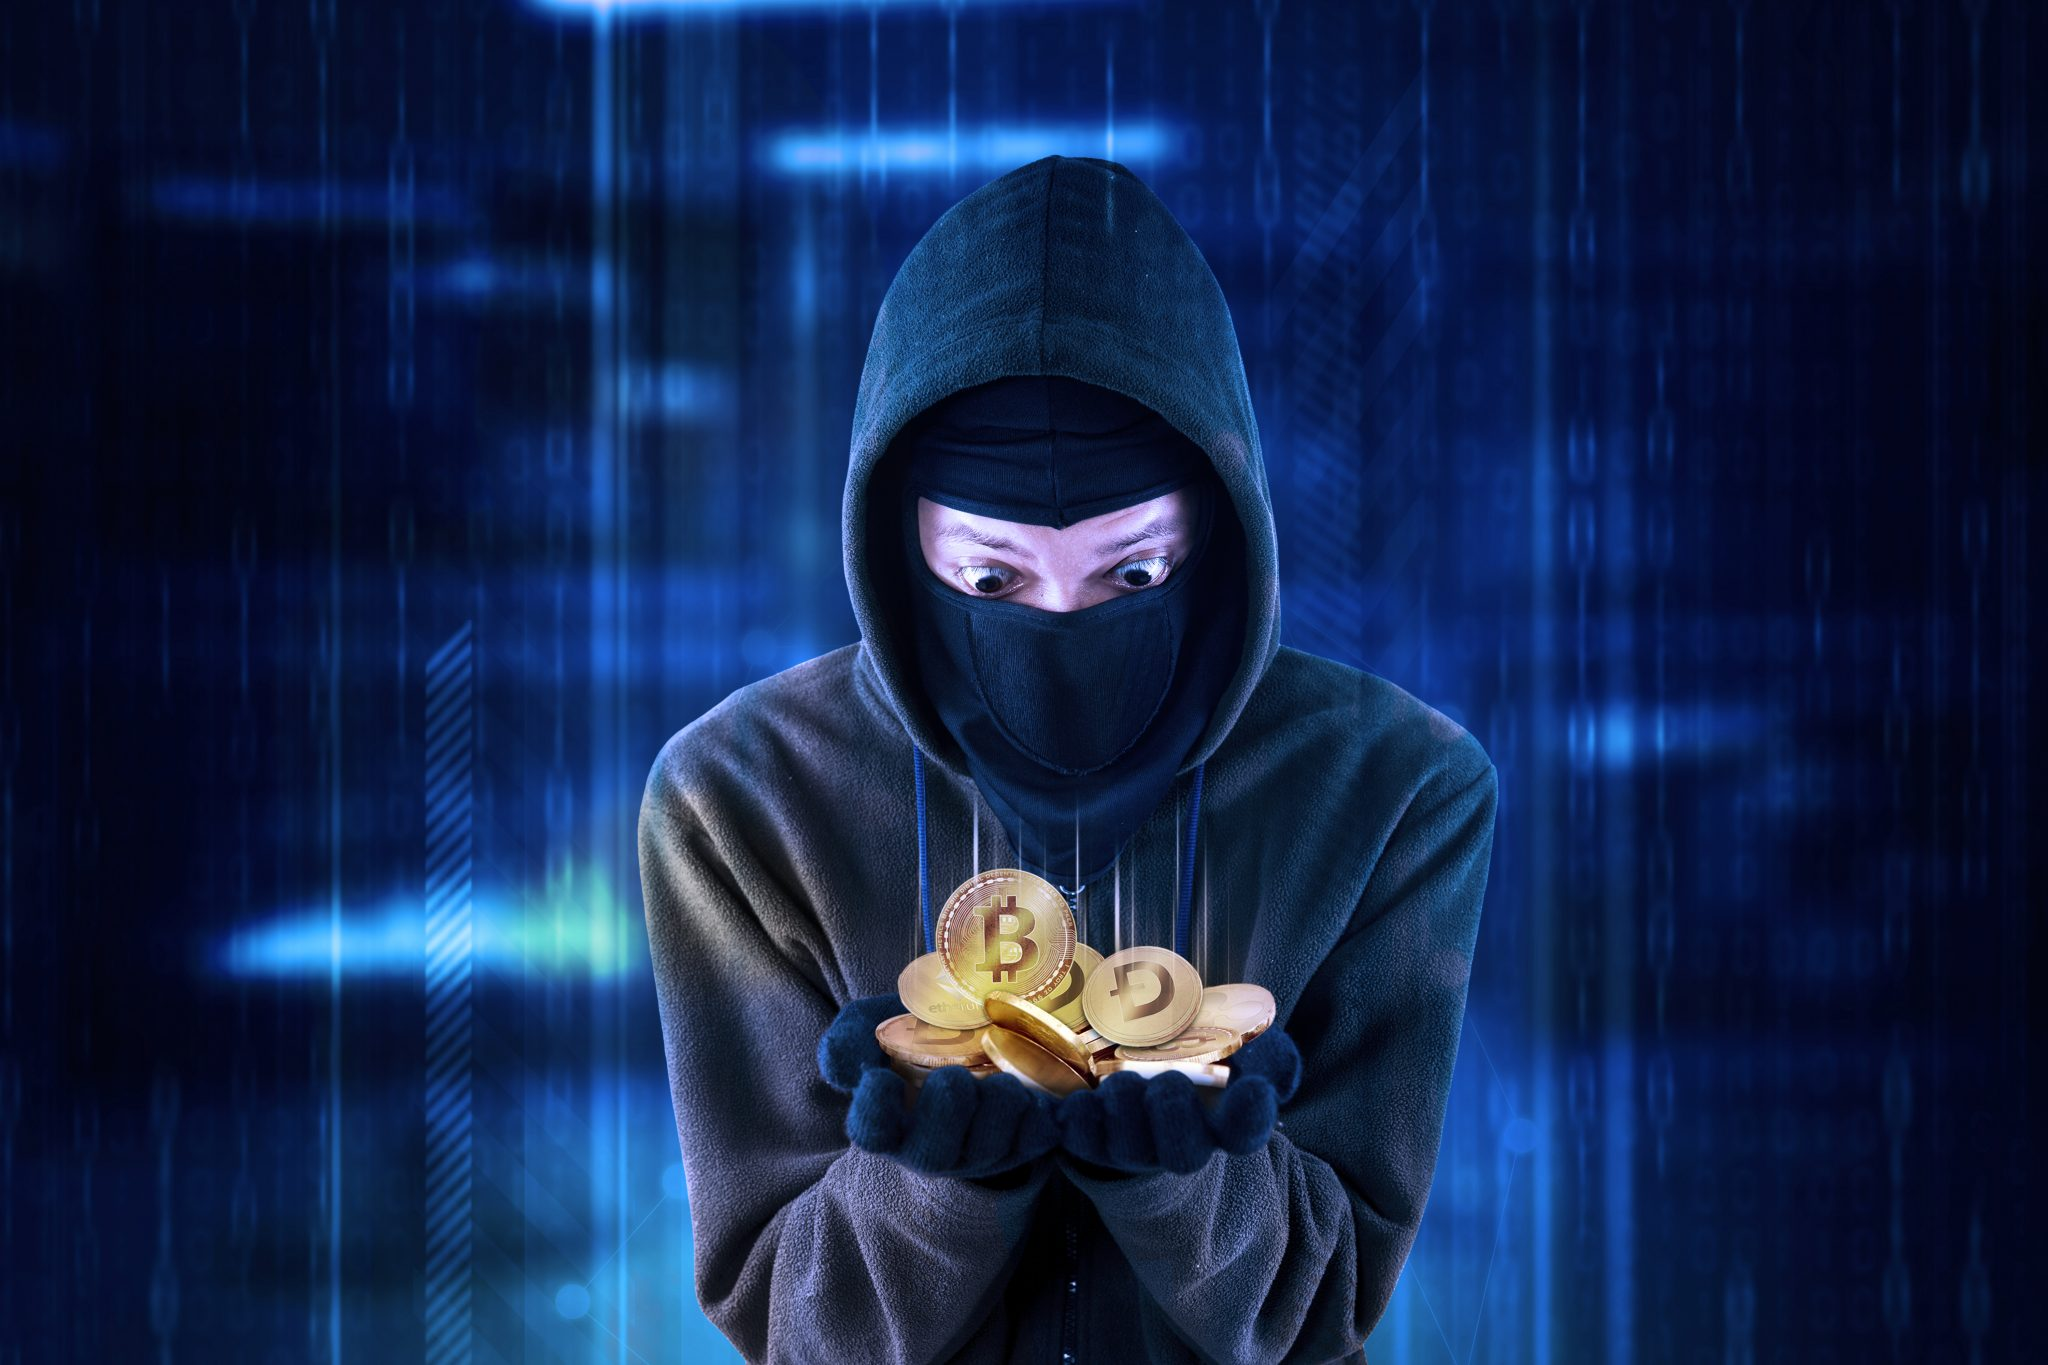 Hooded hacker looks shocked while getting cryptocurrency coins and standing with virtual screen background